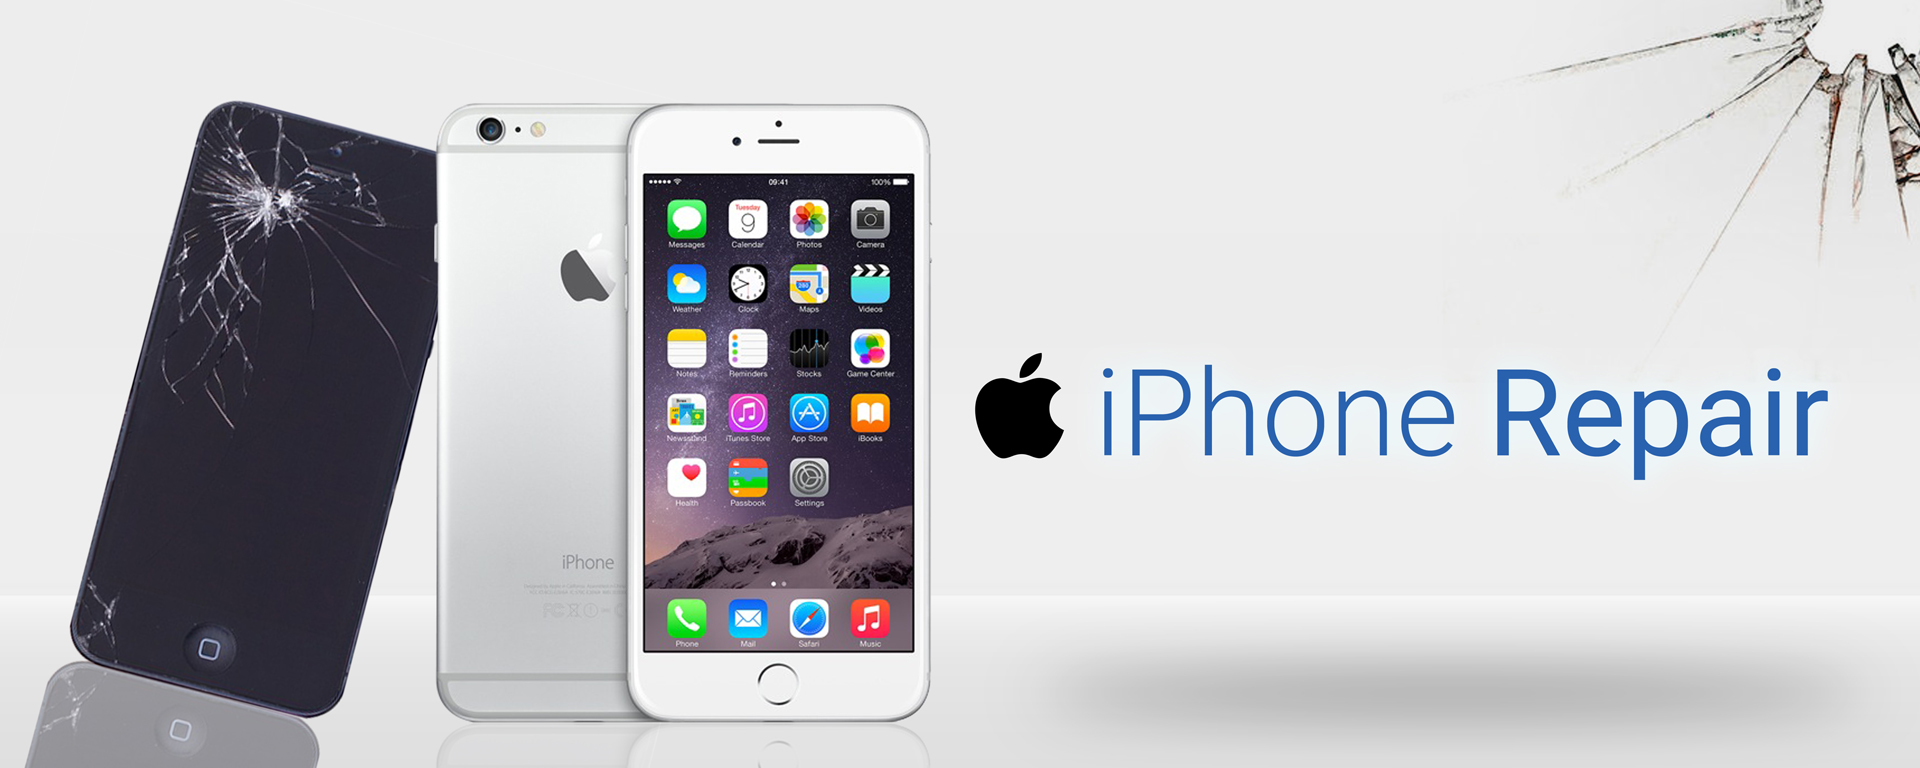 iphone fix screen iphone screen repair iphone repair 4 4s 5 5c 5s 6 5323